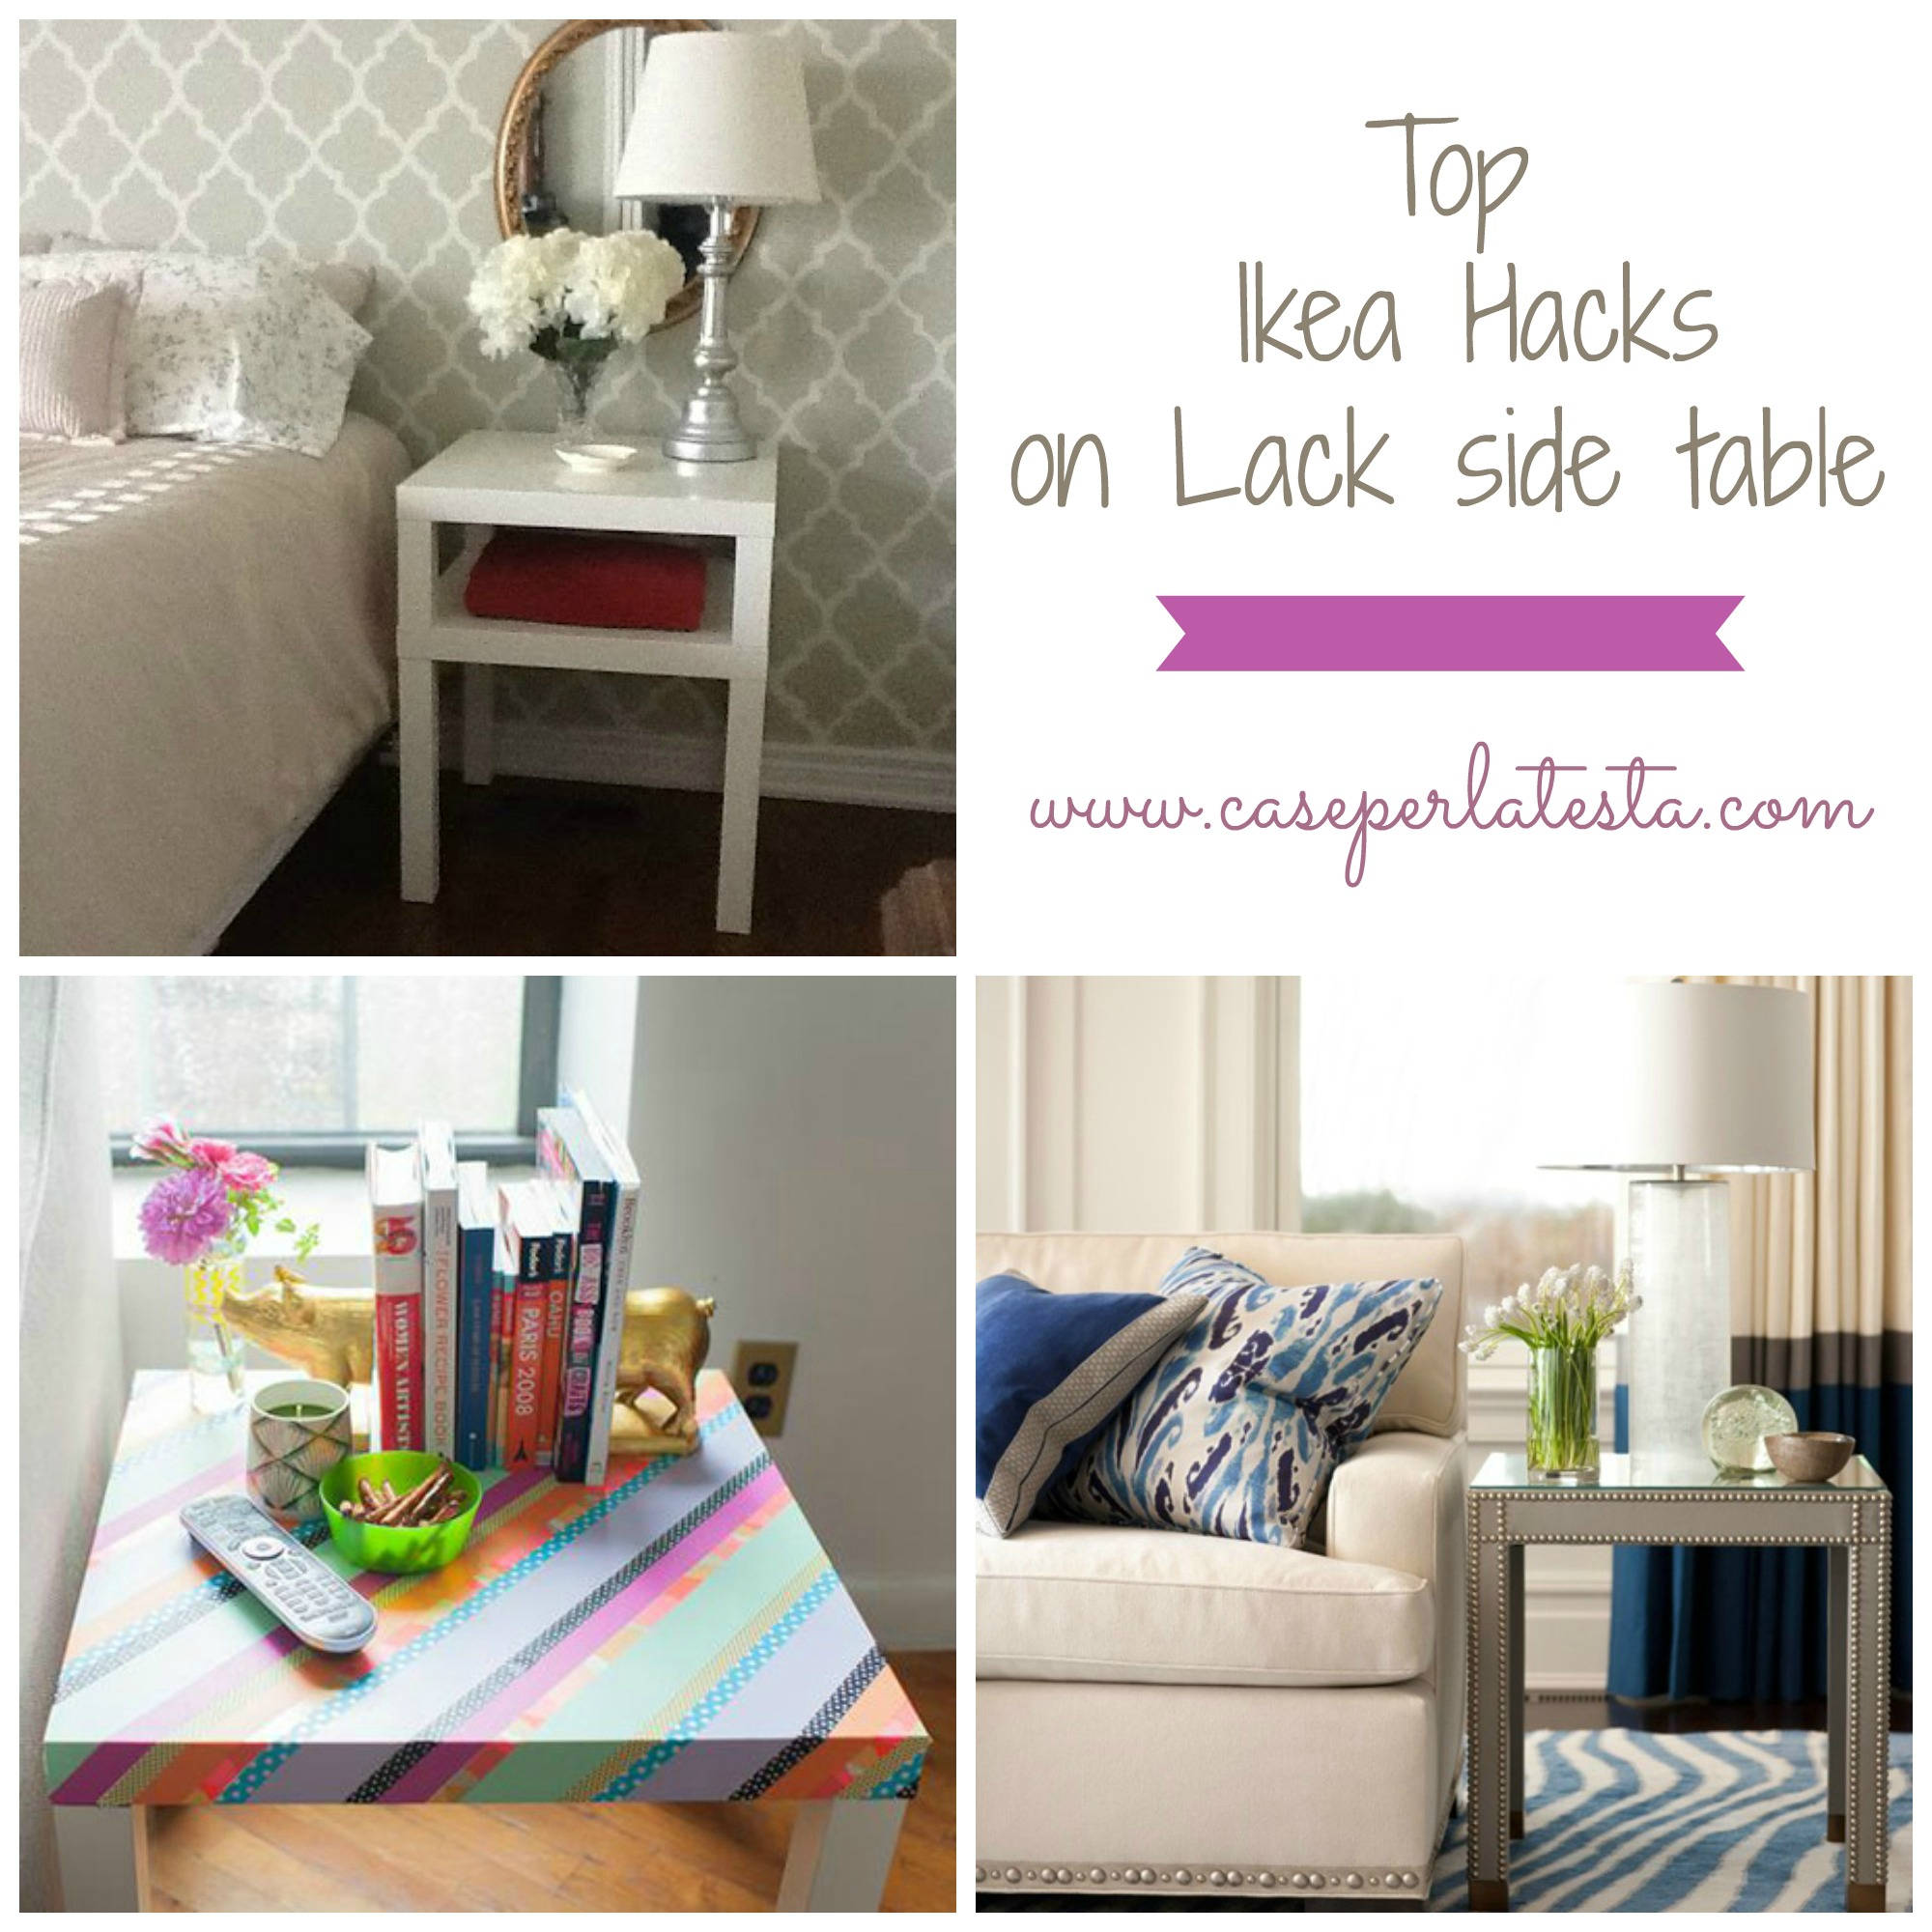 top ikea hacks su tavolino lack top ikea hacks on lack side table caseperlatesta. Black Bedroom Furniture Sets. Home Design Ideas